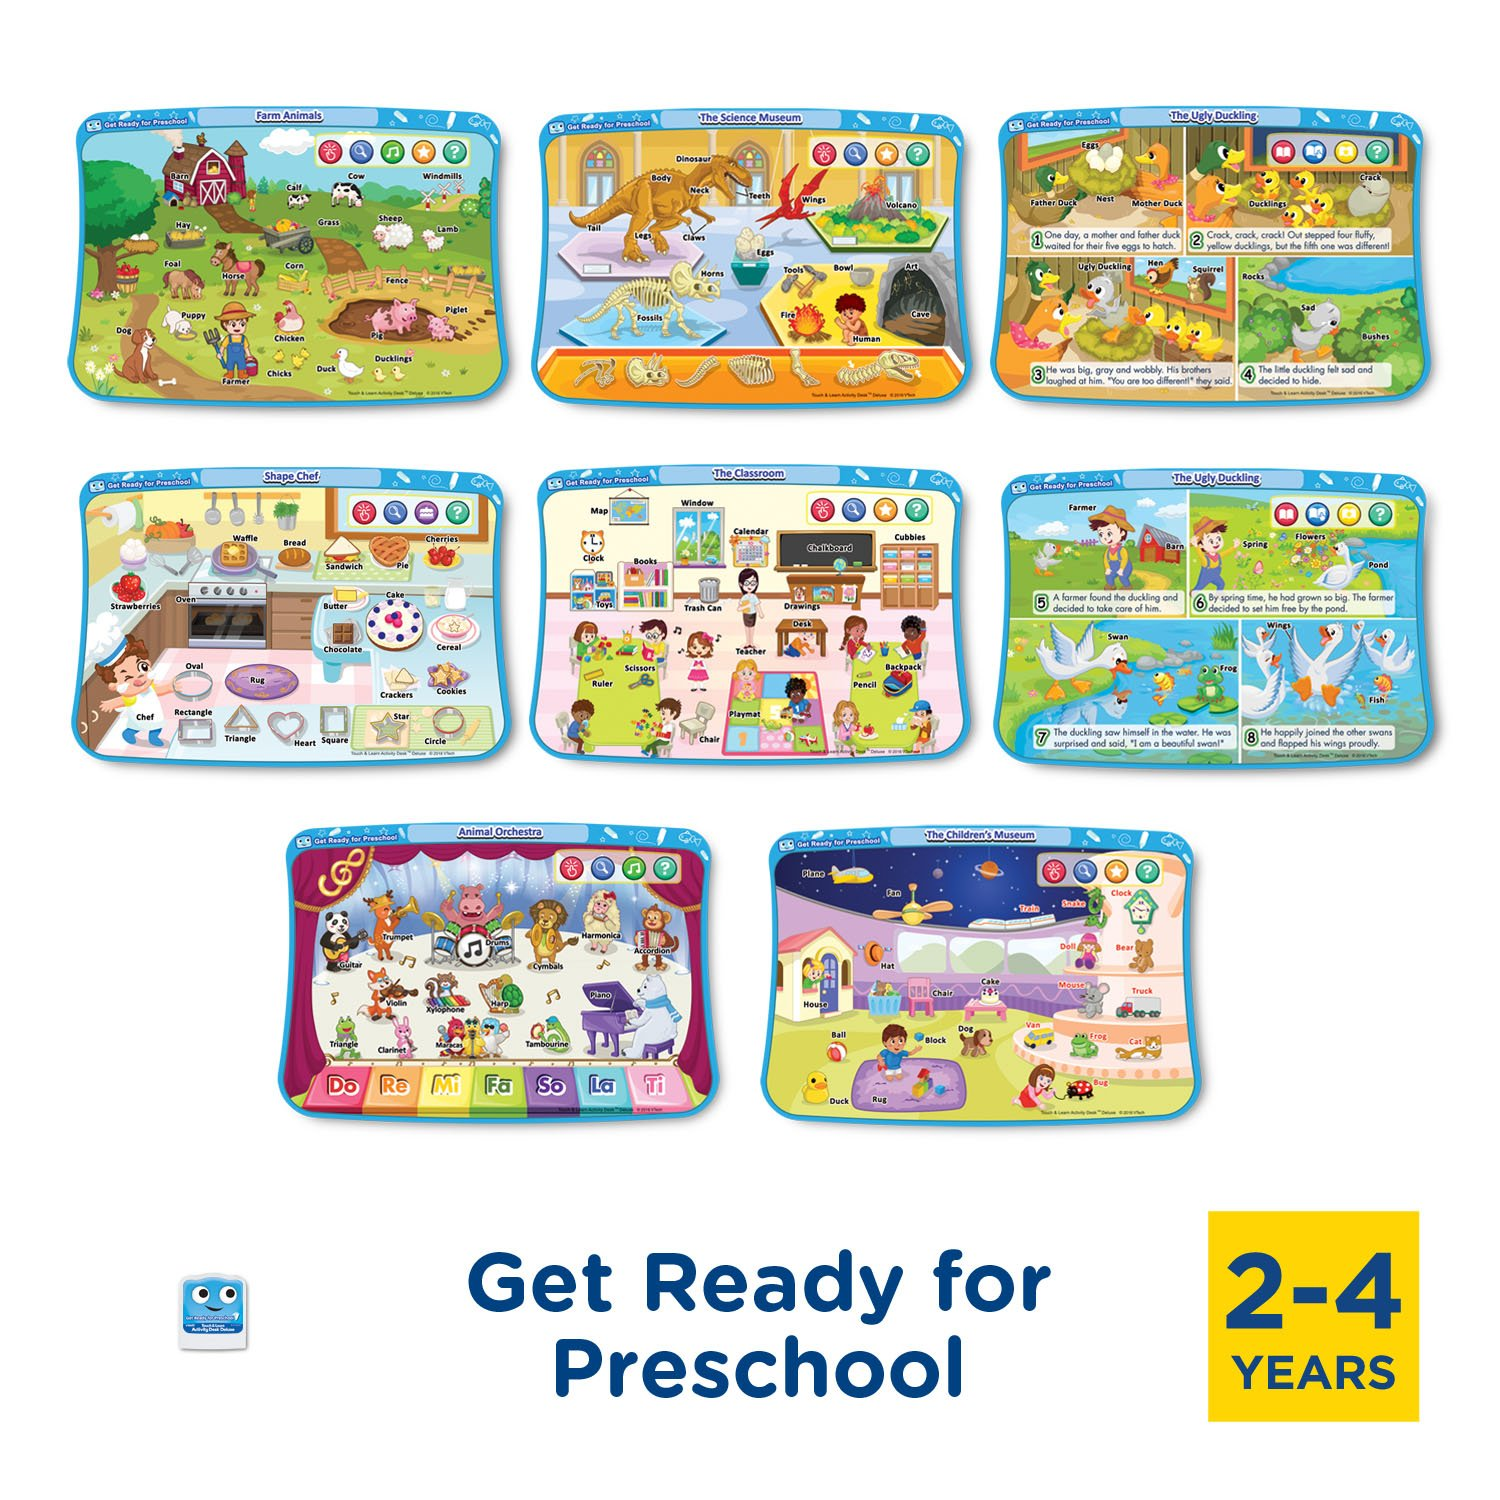 VTech Touch & Learn Activity Desk Deluxe 4-in-1 Preschool Bundle Expansion Pack I for Age 2-4 by VTech (Image #3)